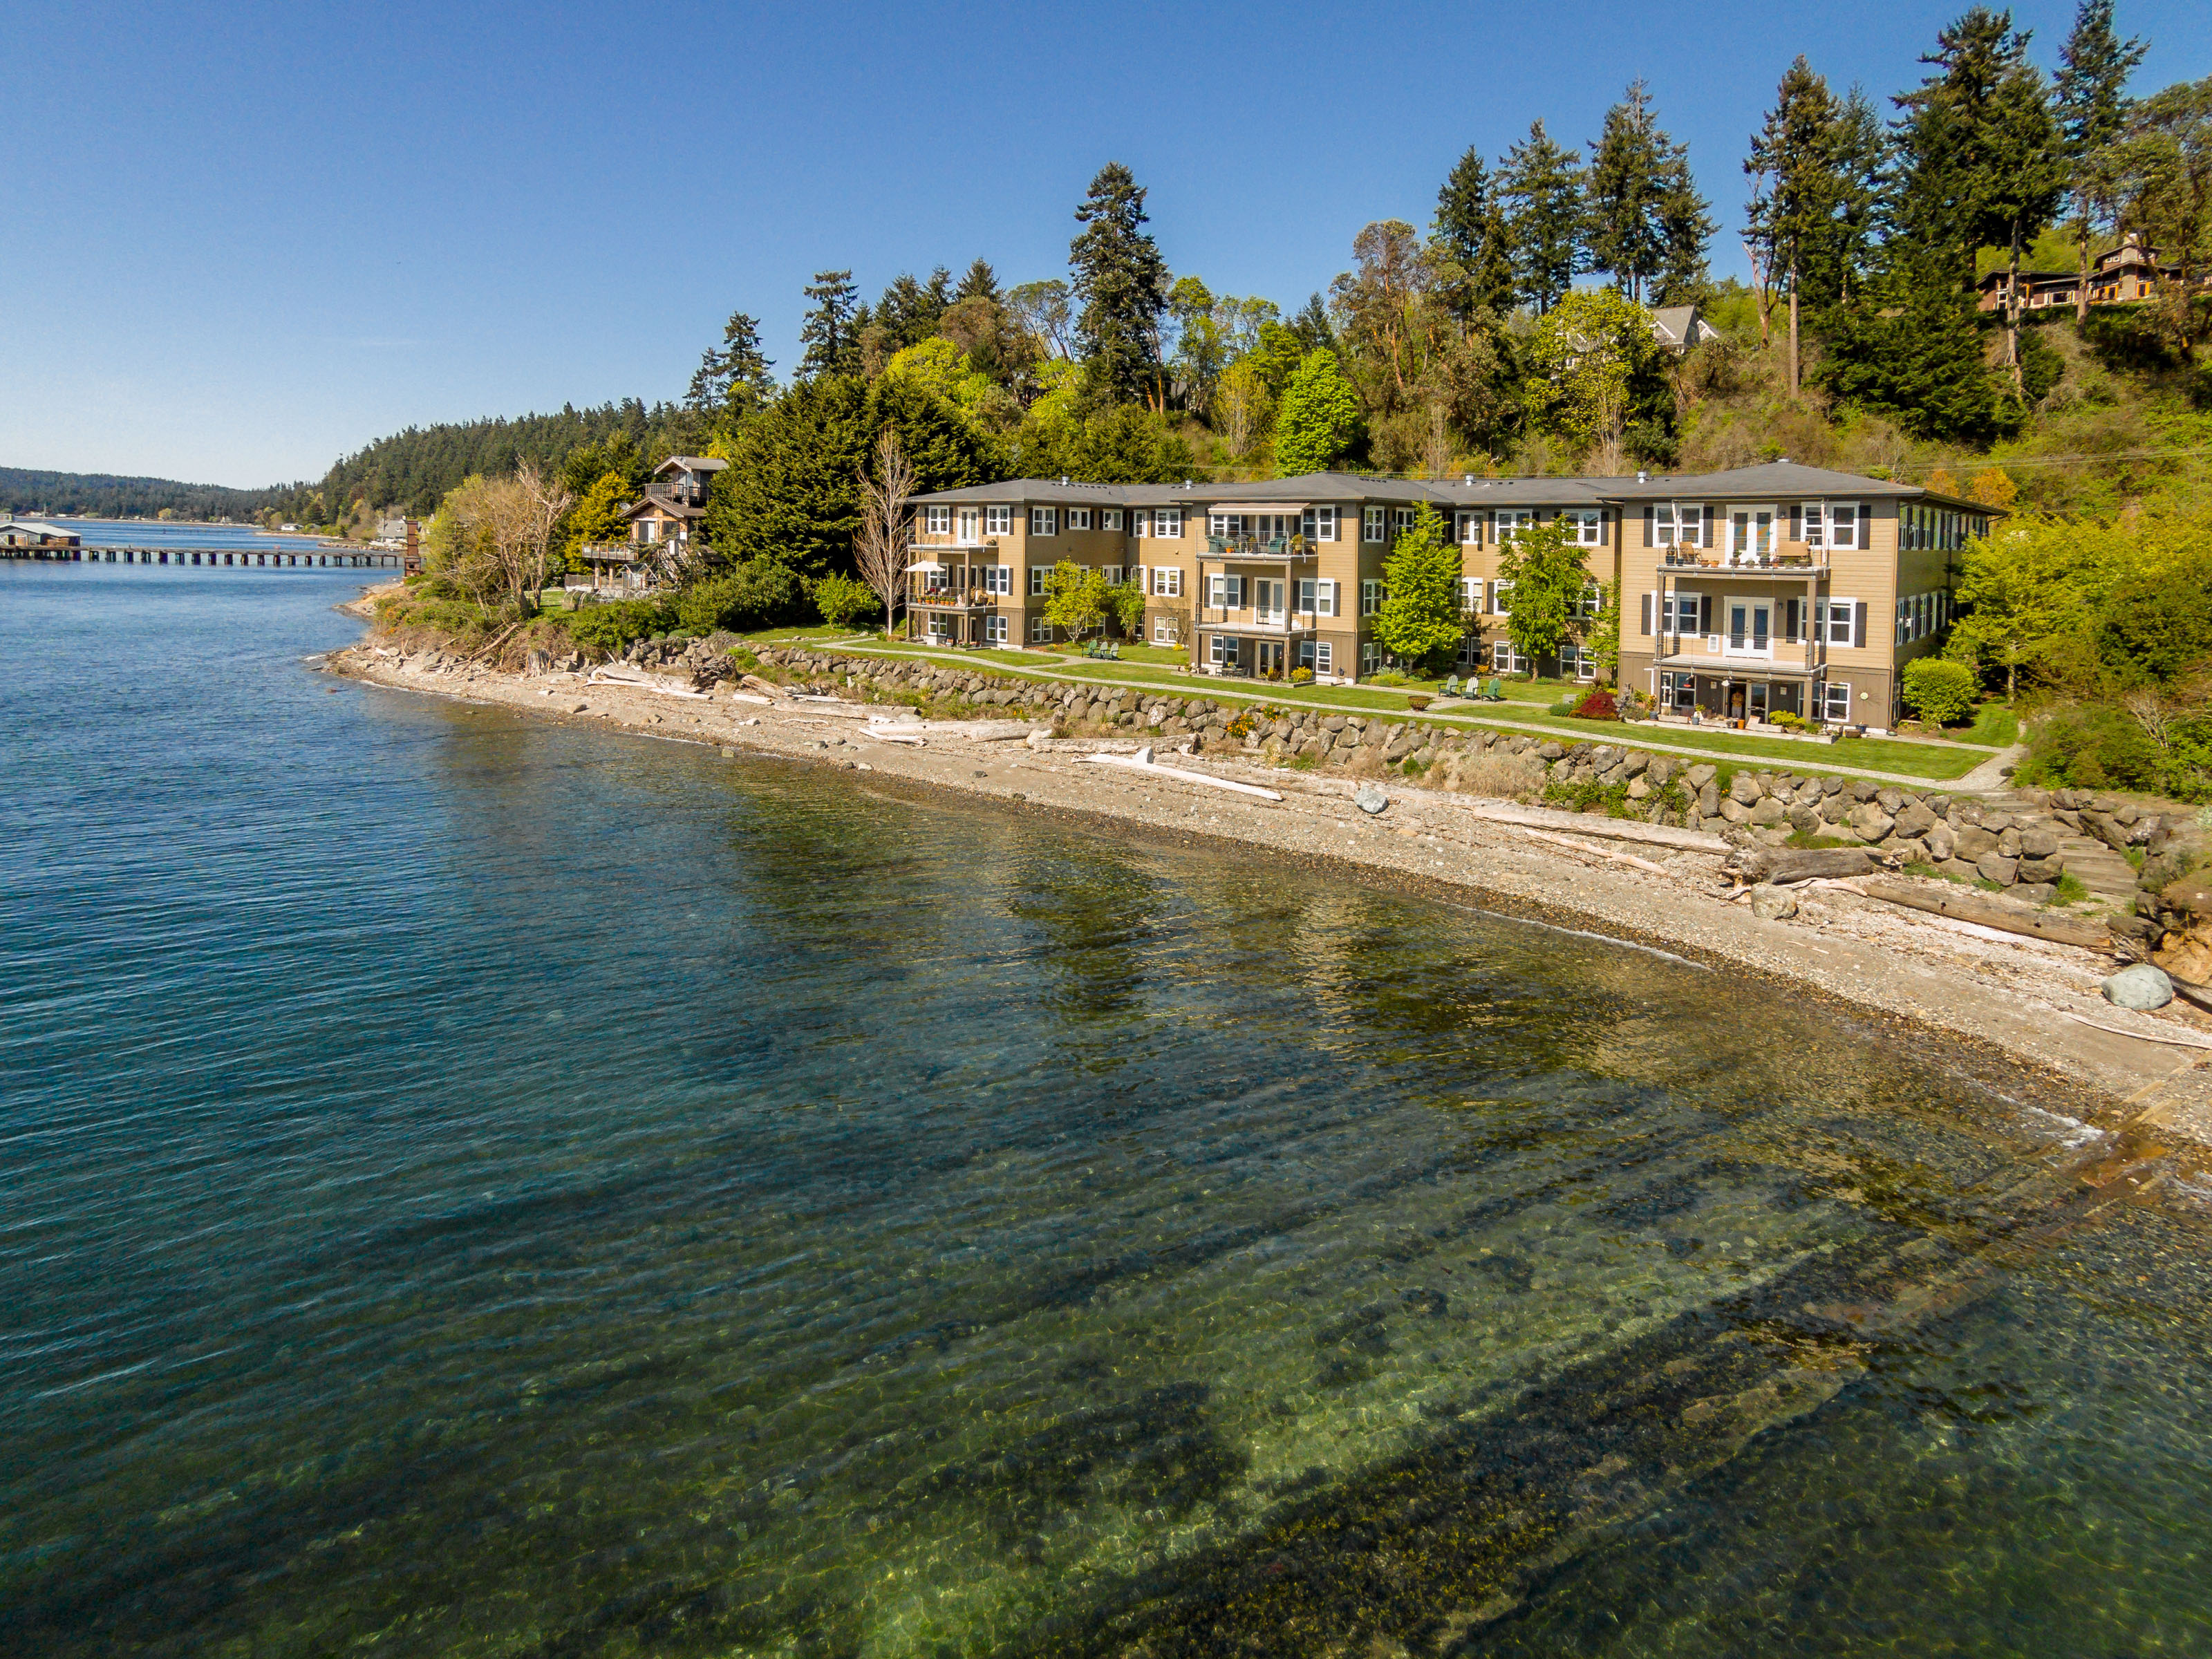 Single Family Home for Sale at Waterfront Condo 9551 NE South Beach Rd #3D Bainbridge Island, Washington 98110 United States